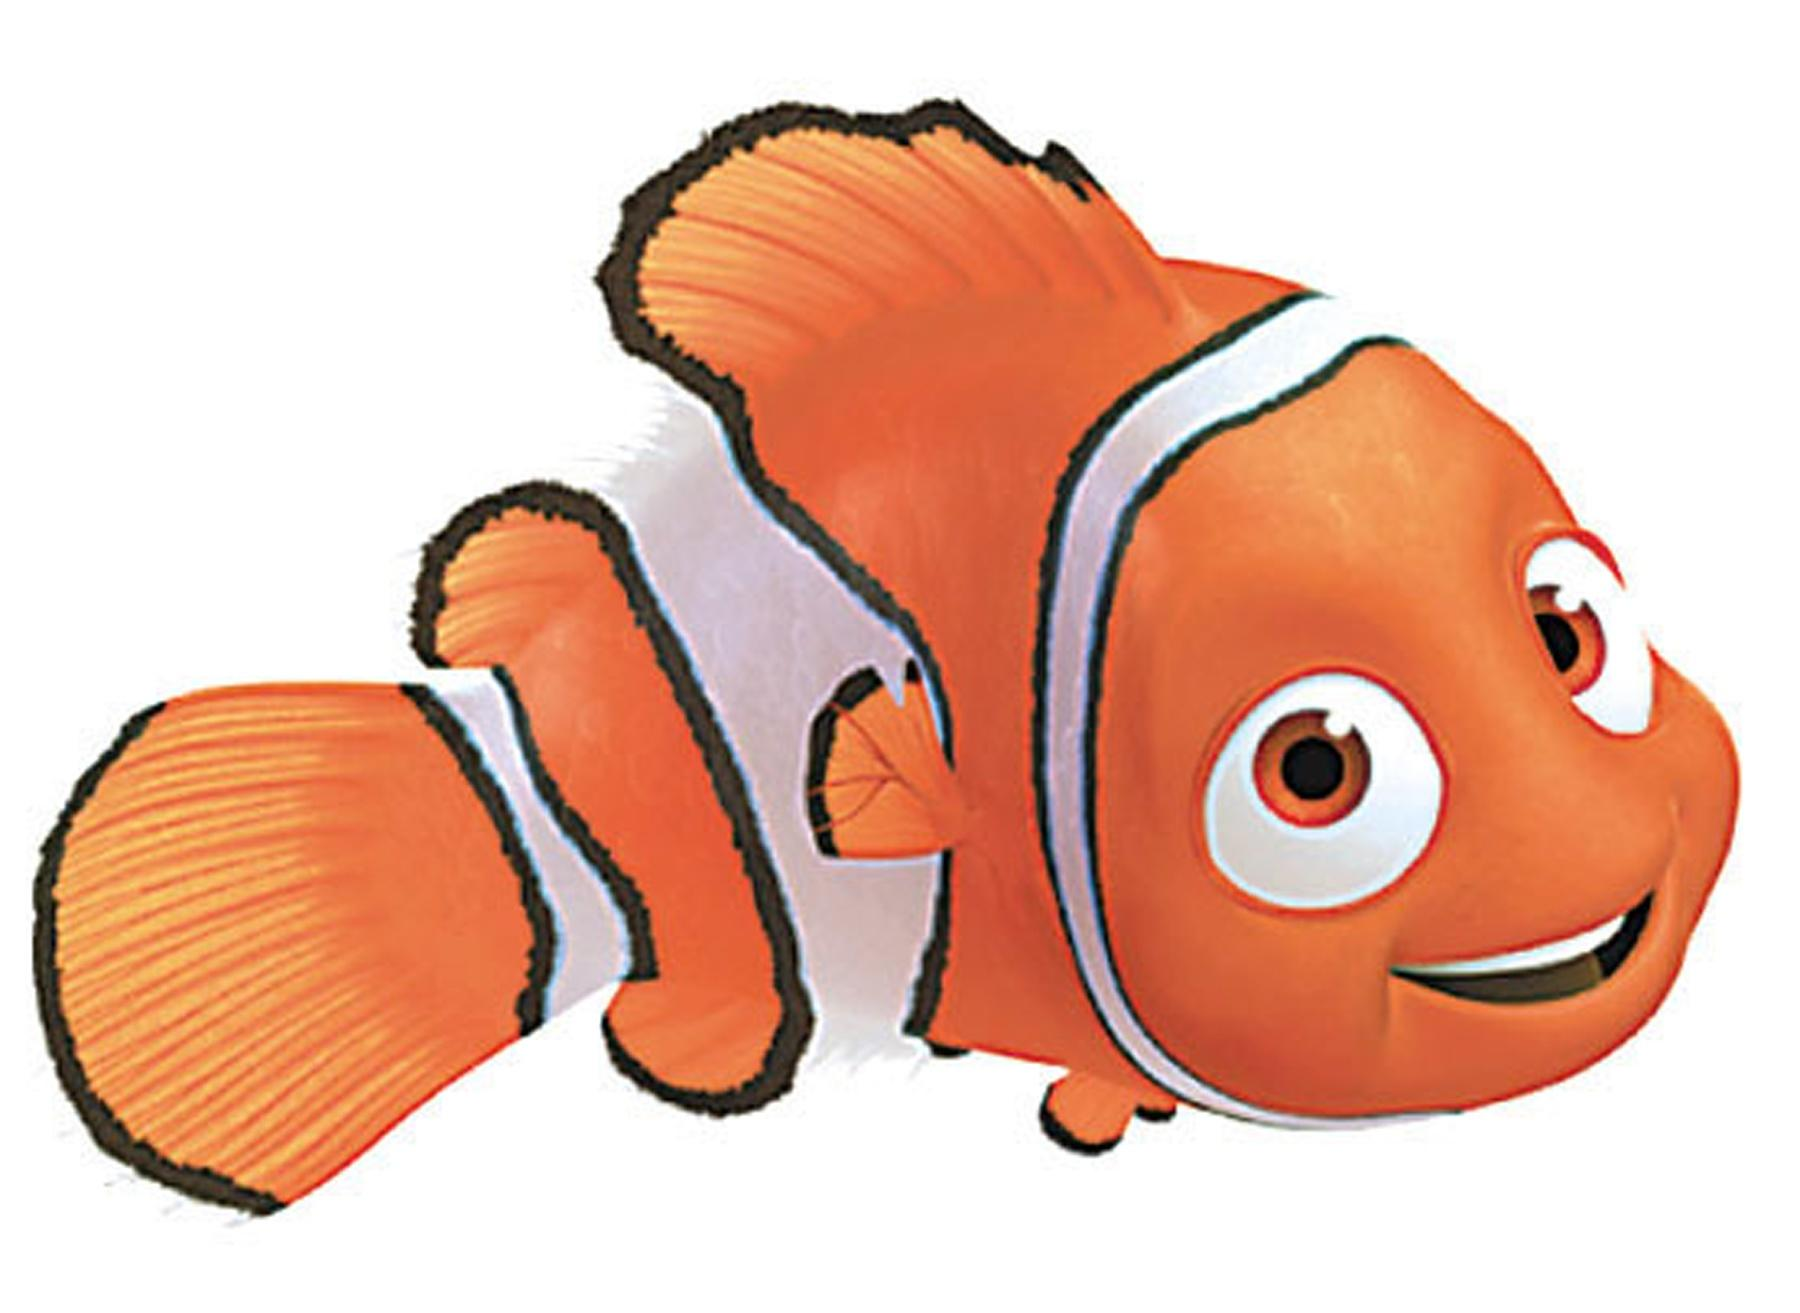 1800x1313 Cool Nemo Clipart 26 Finding Clip Art Panda Free Images